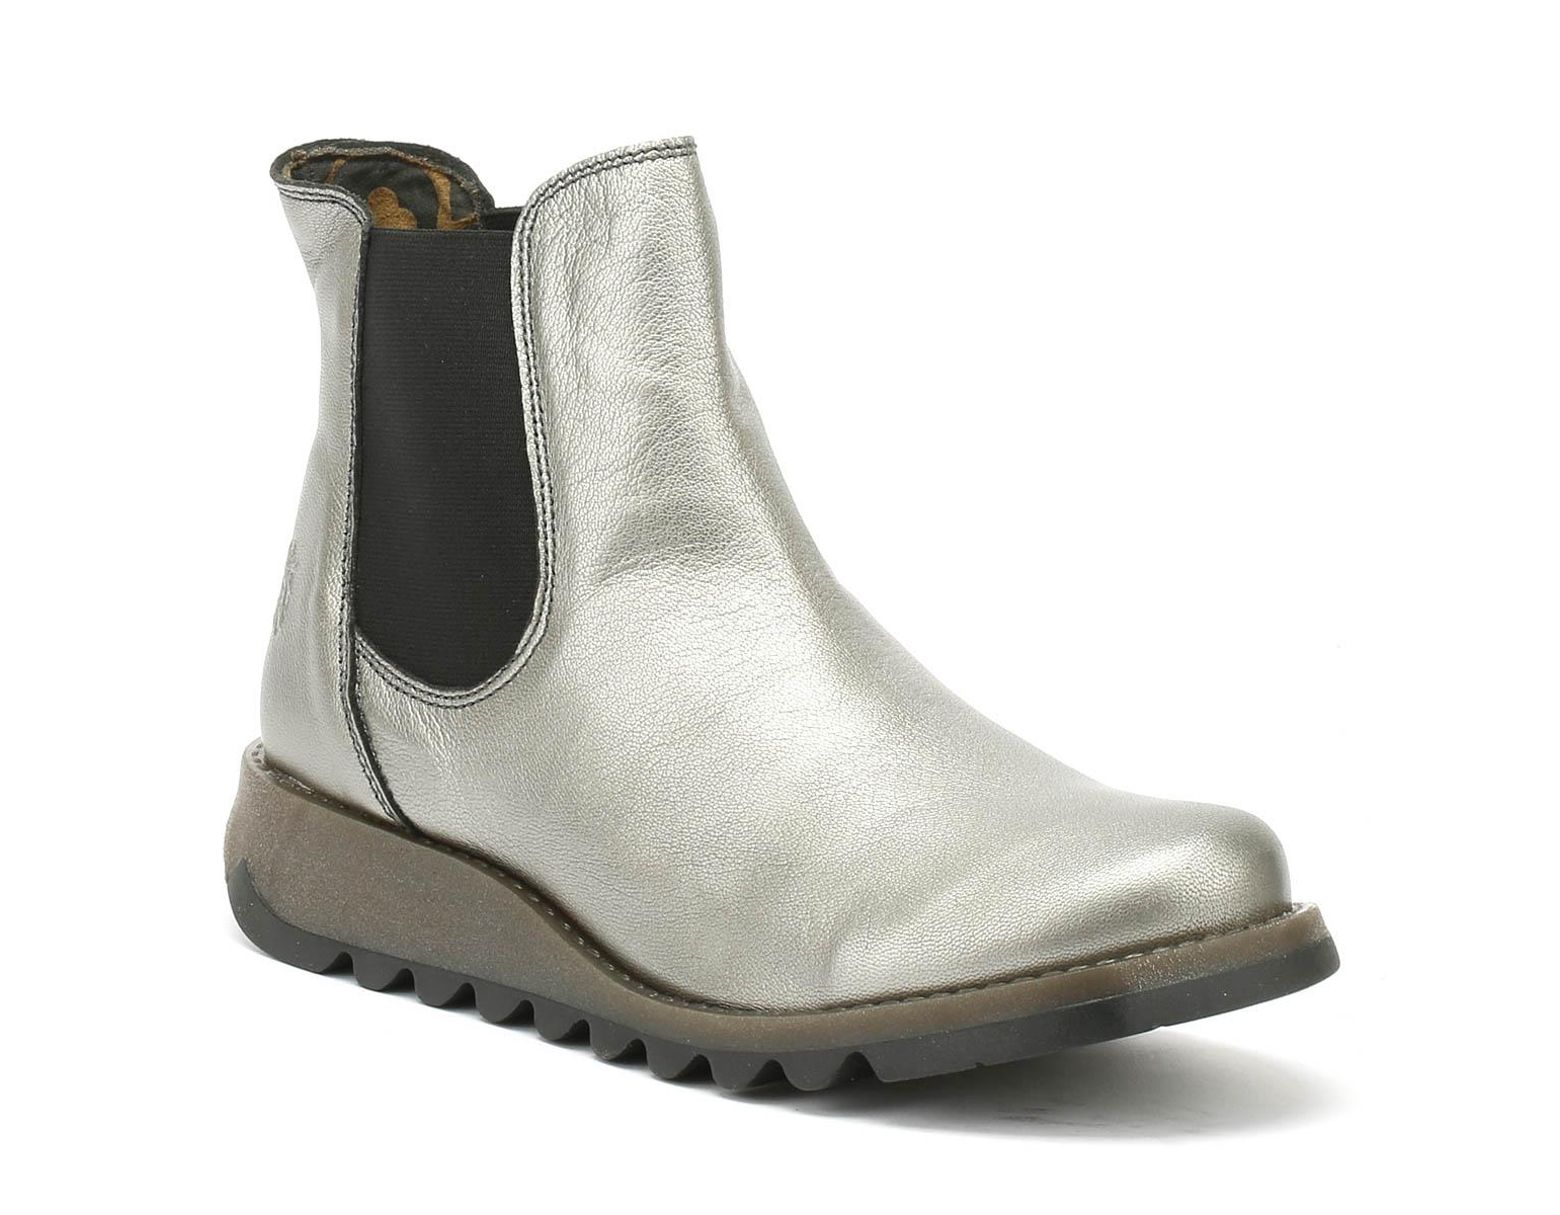 30155a10ccafc Fly London Womens Lead Silver Salv Borgogna Boots in Metallic - Lyst